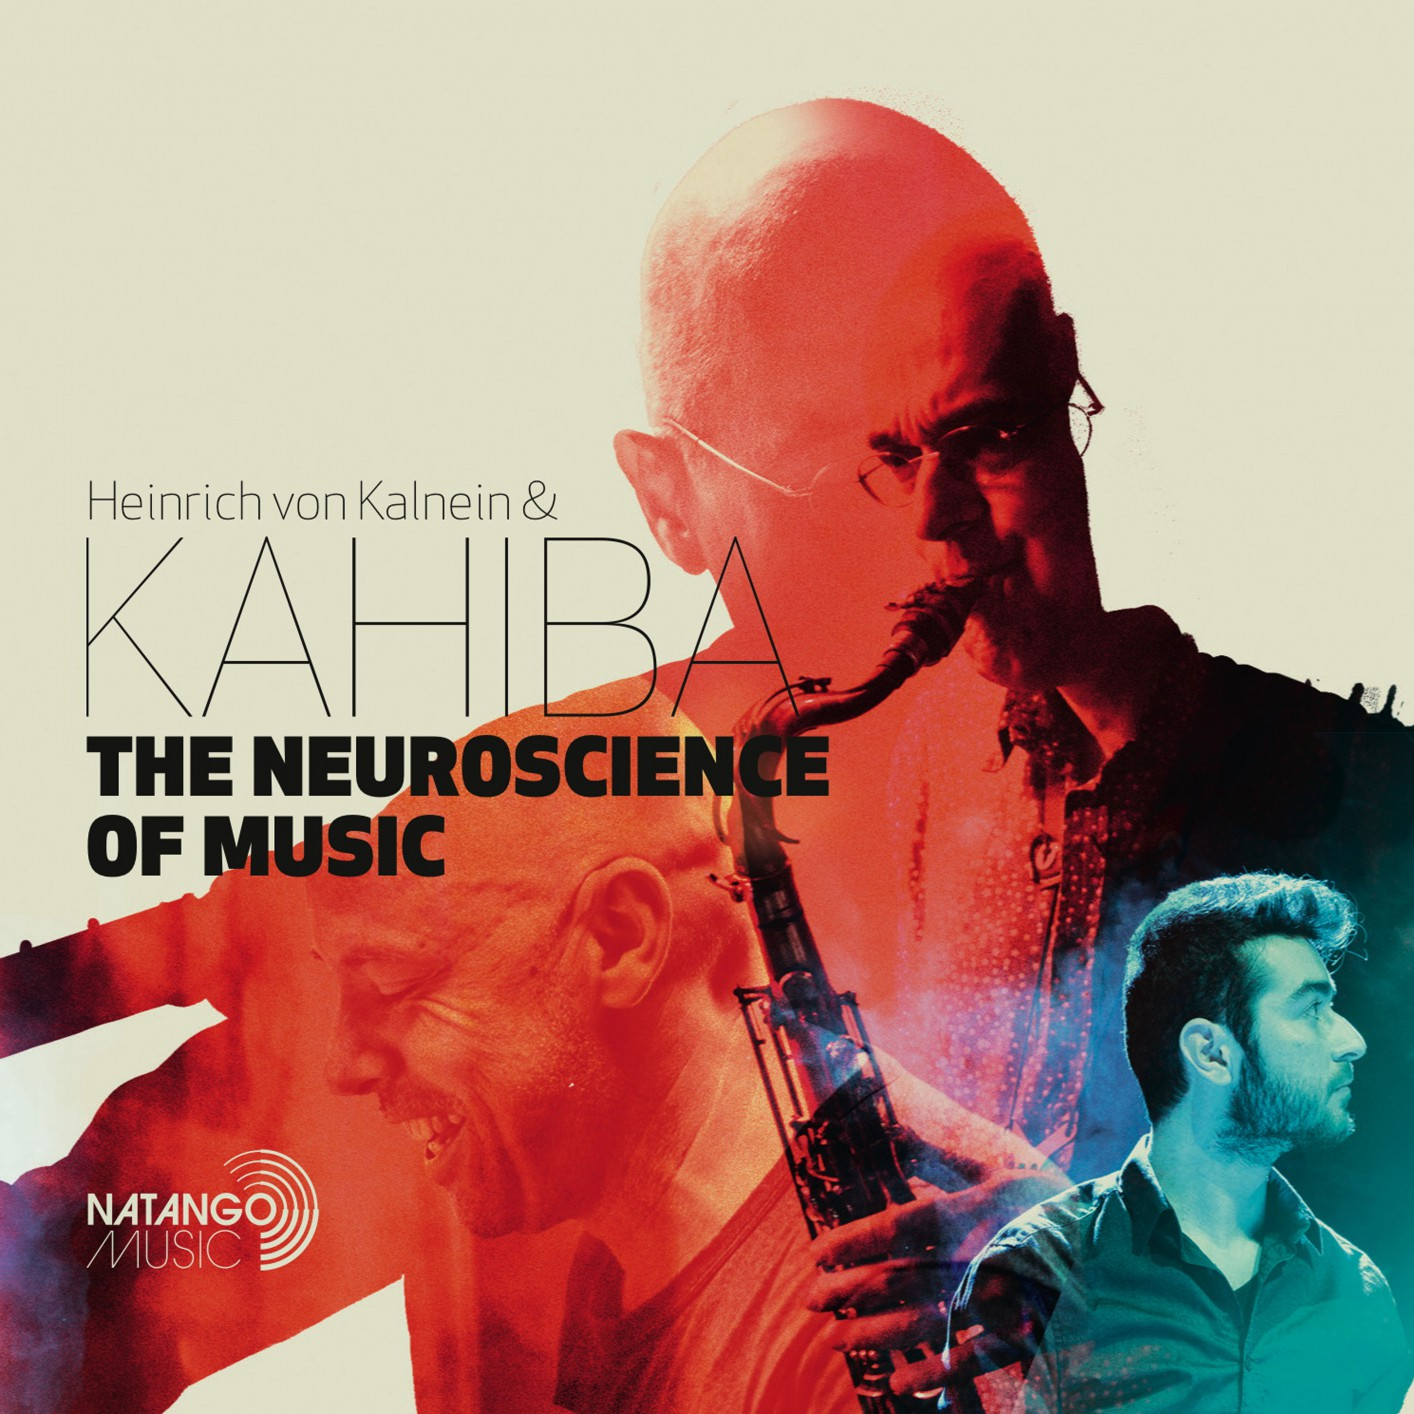 the neuro chemistry of music The neurochemistry of music by deric bownds @dericbownds music is one of a small set of human cultural universals, evoking a wide range of emotions, from exhilaration to relaxation, joy to sadness, fear to comfort, and even combinations of these.